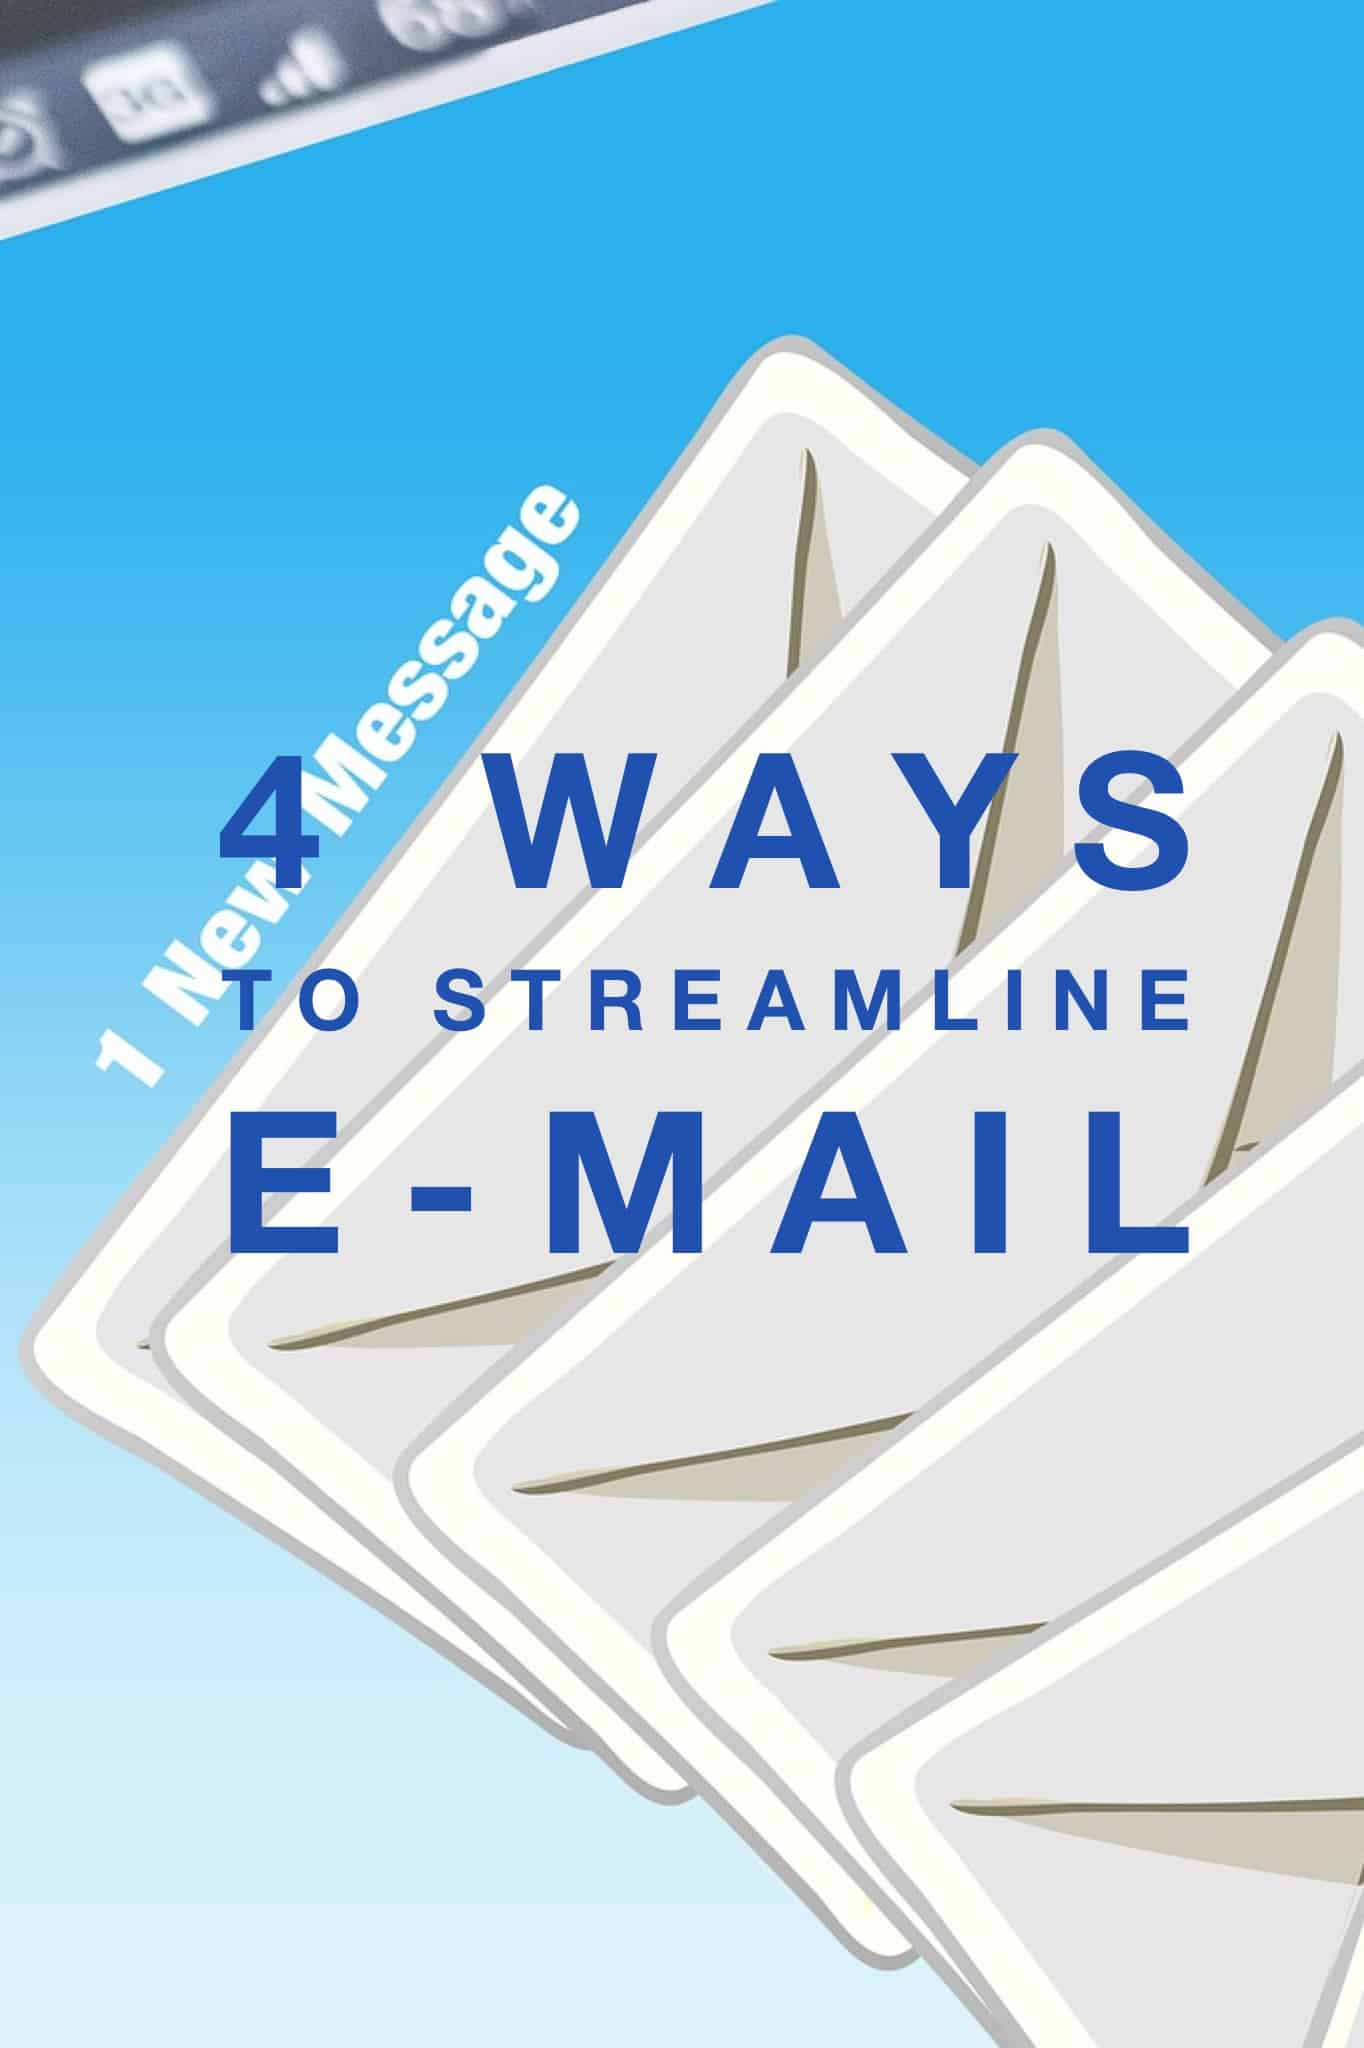 4 ways to streamline email title